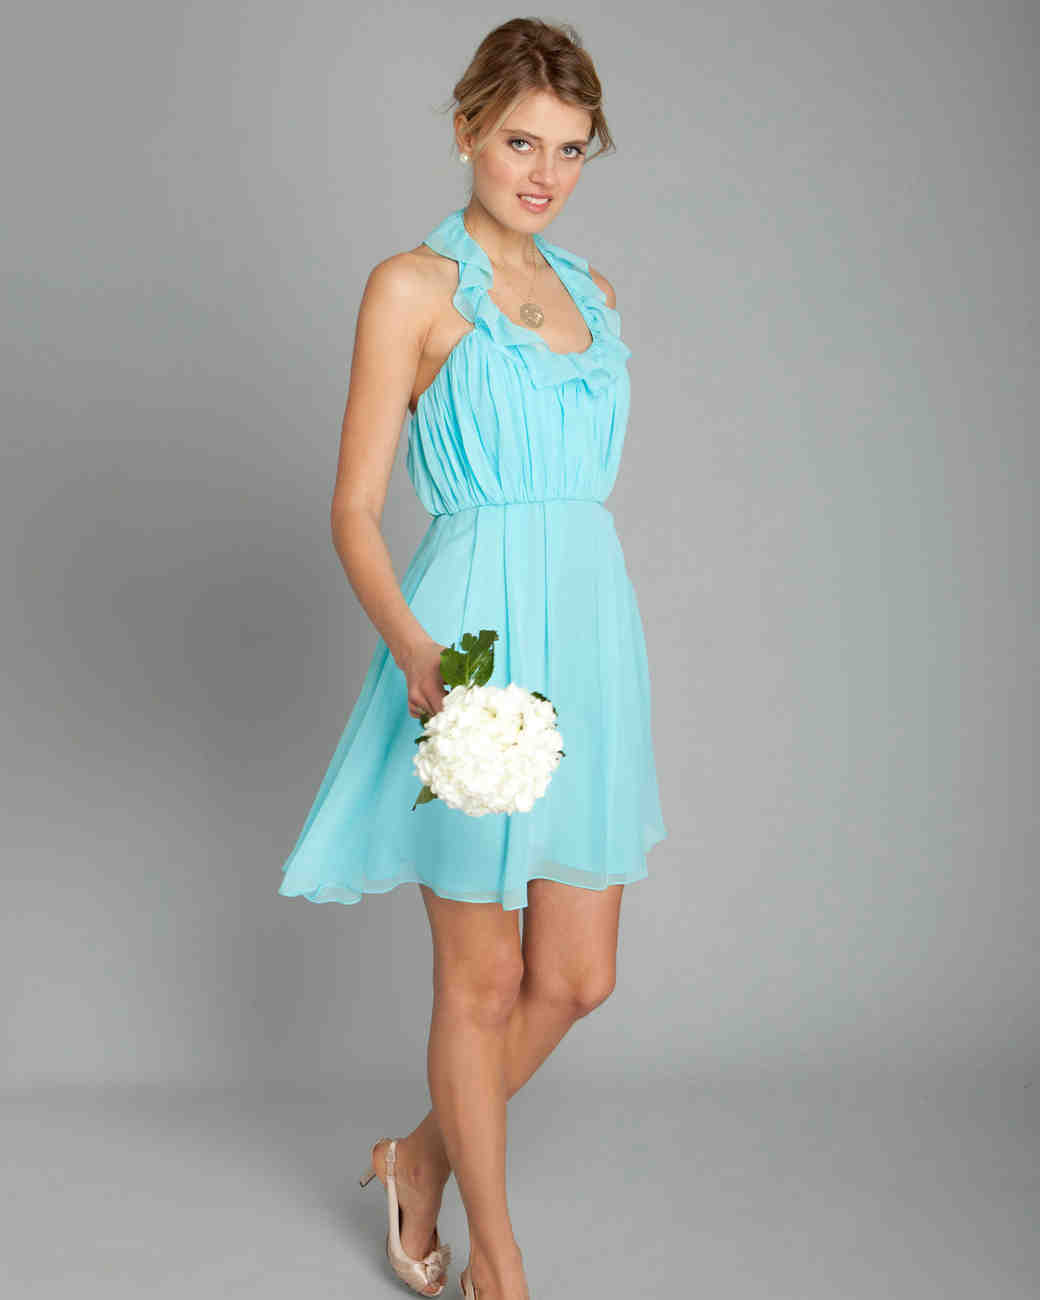 Bridesmaid dresses for beach weddings martha stewart for Spring wedding bridesmaid dress colors